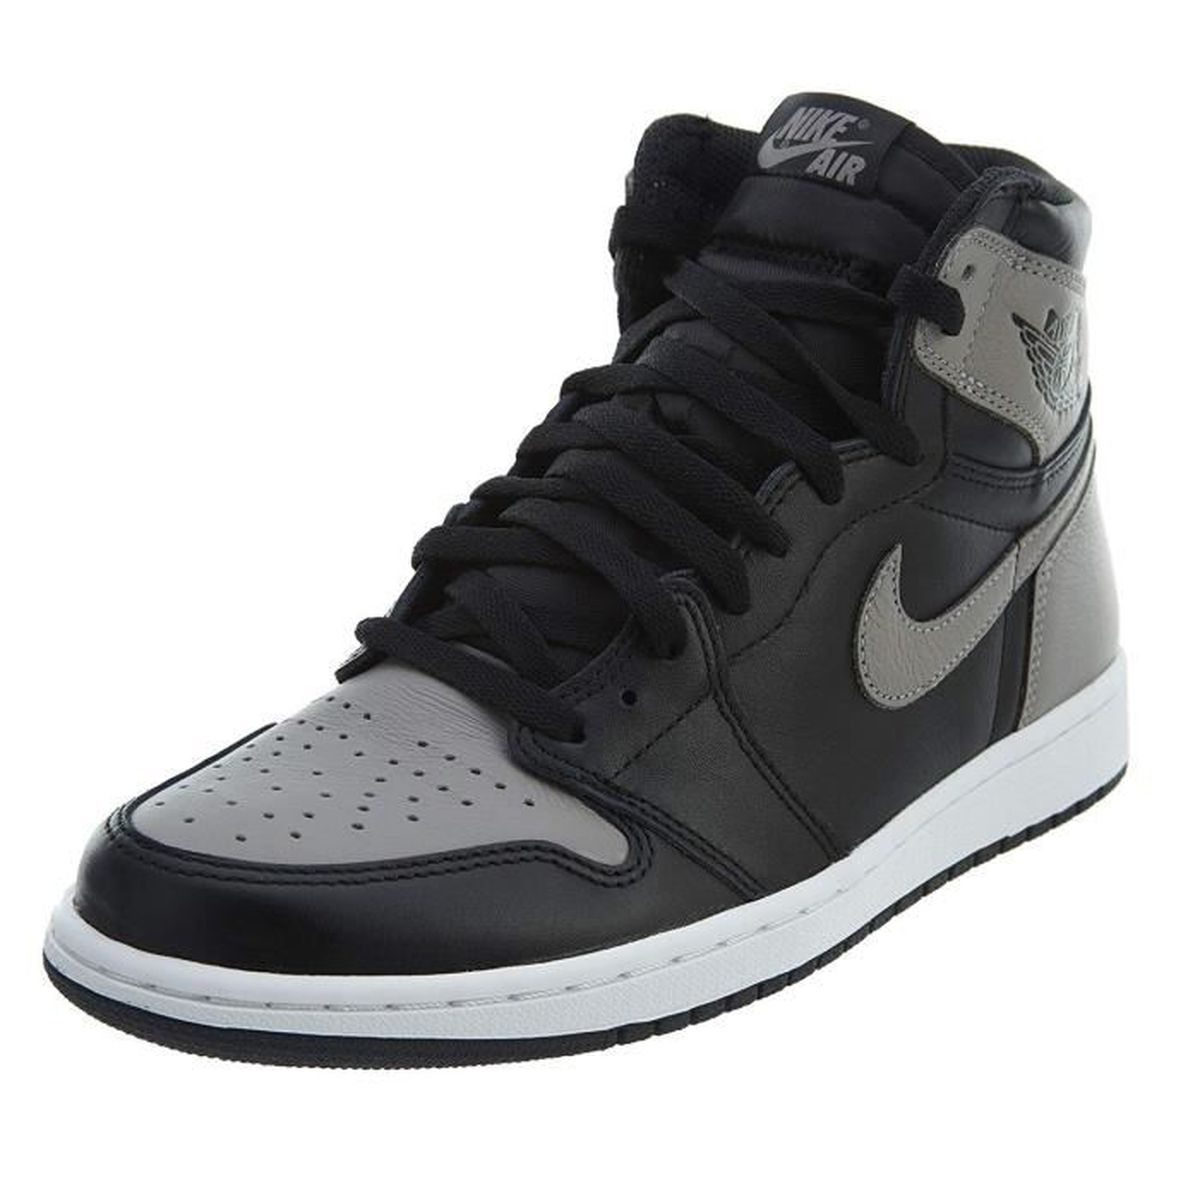 promo code 70bd0 1be21 BASKET Nike Air Jordan 1 Retro High Og Hommes Basketball